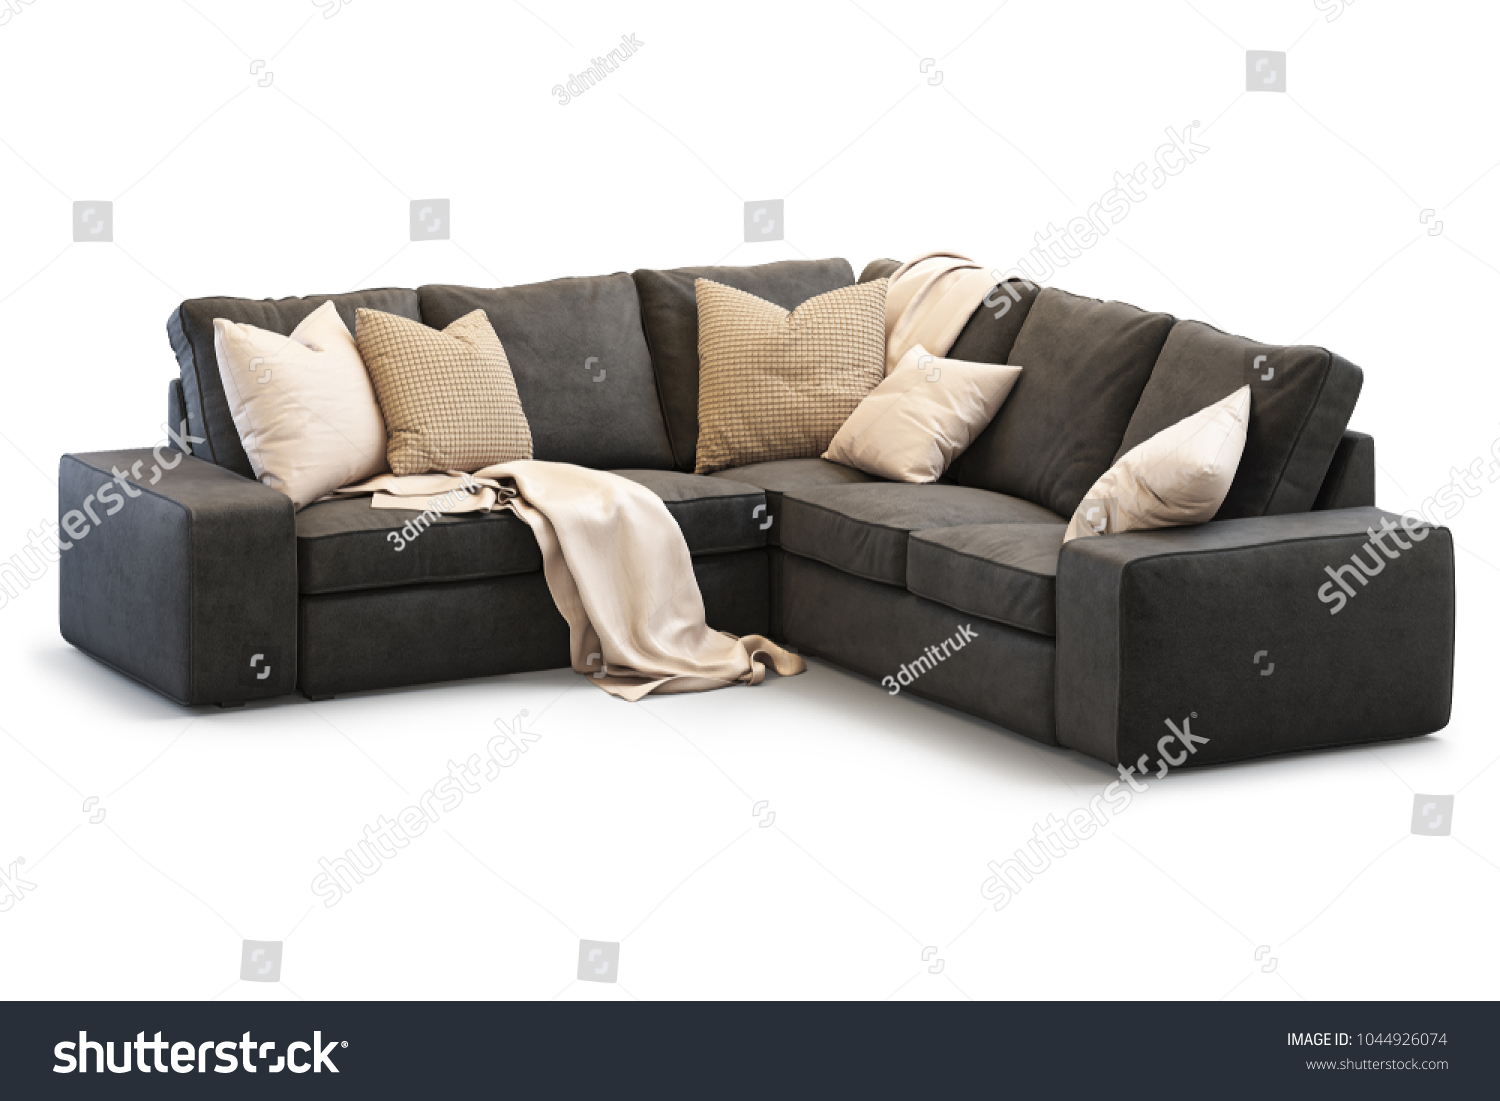 Kivik Sofa Leather Modern Textile Ikea Kivik Sofa Gold Stock Illustration 1044926074